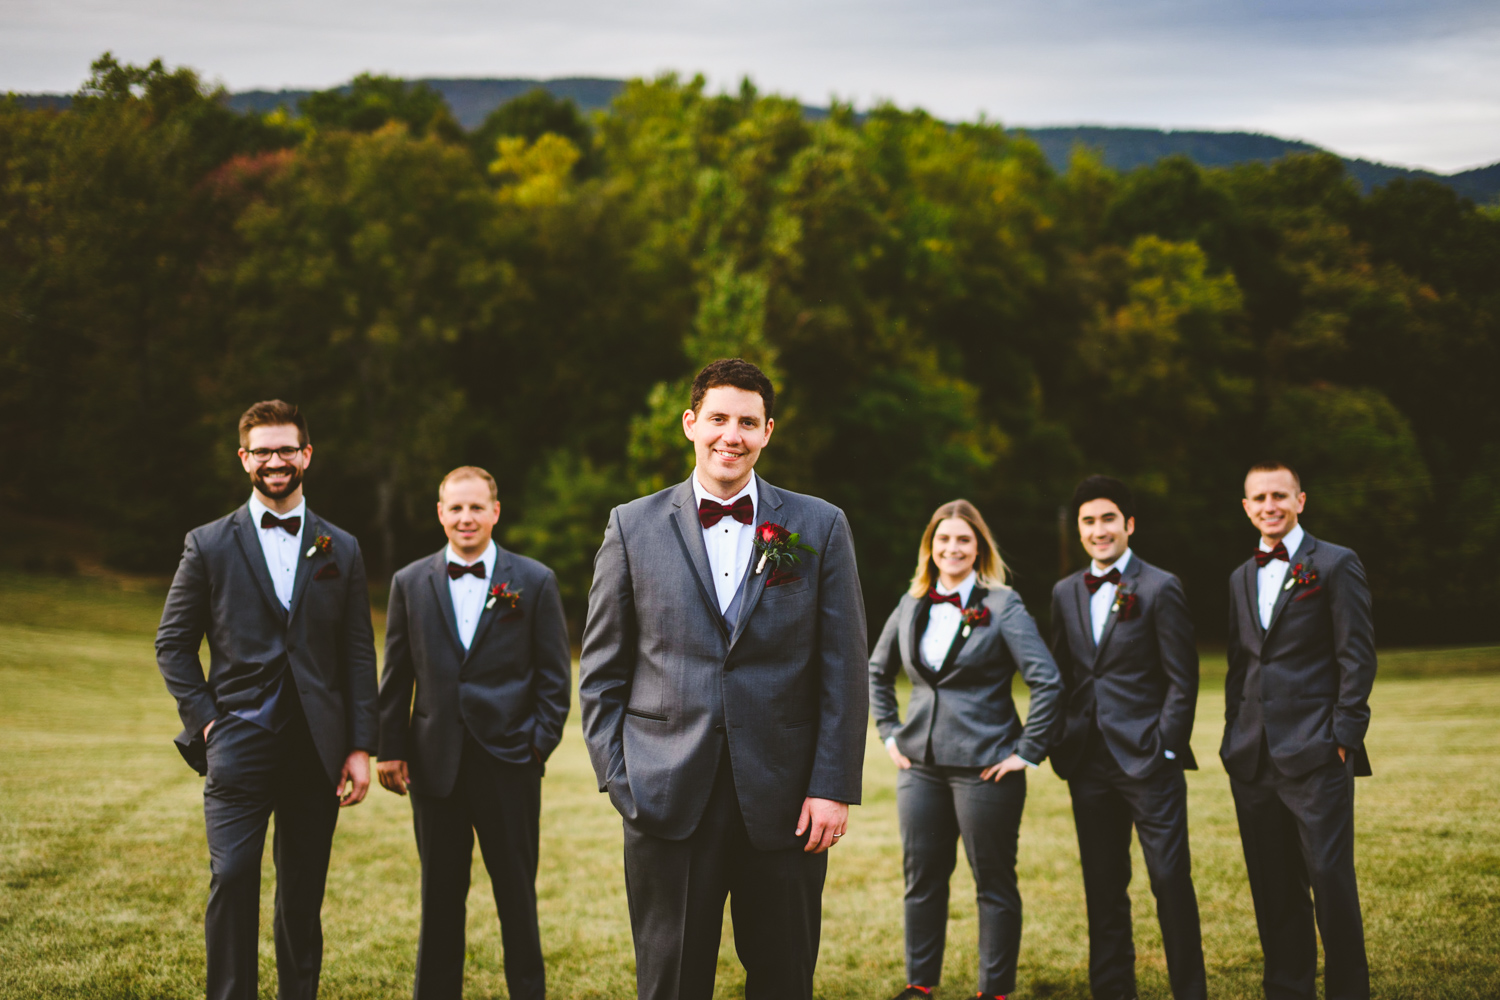 005 - groom and groomsmen portrait on a hill.jpg